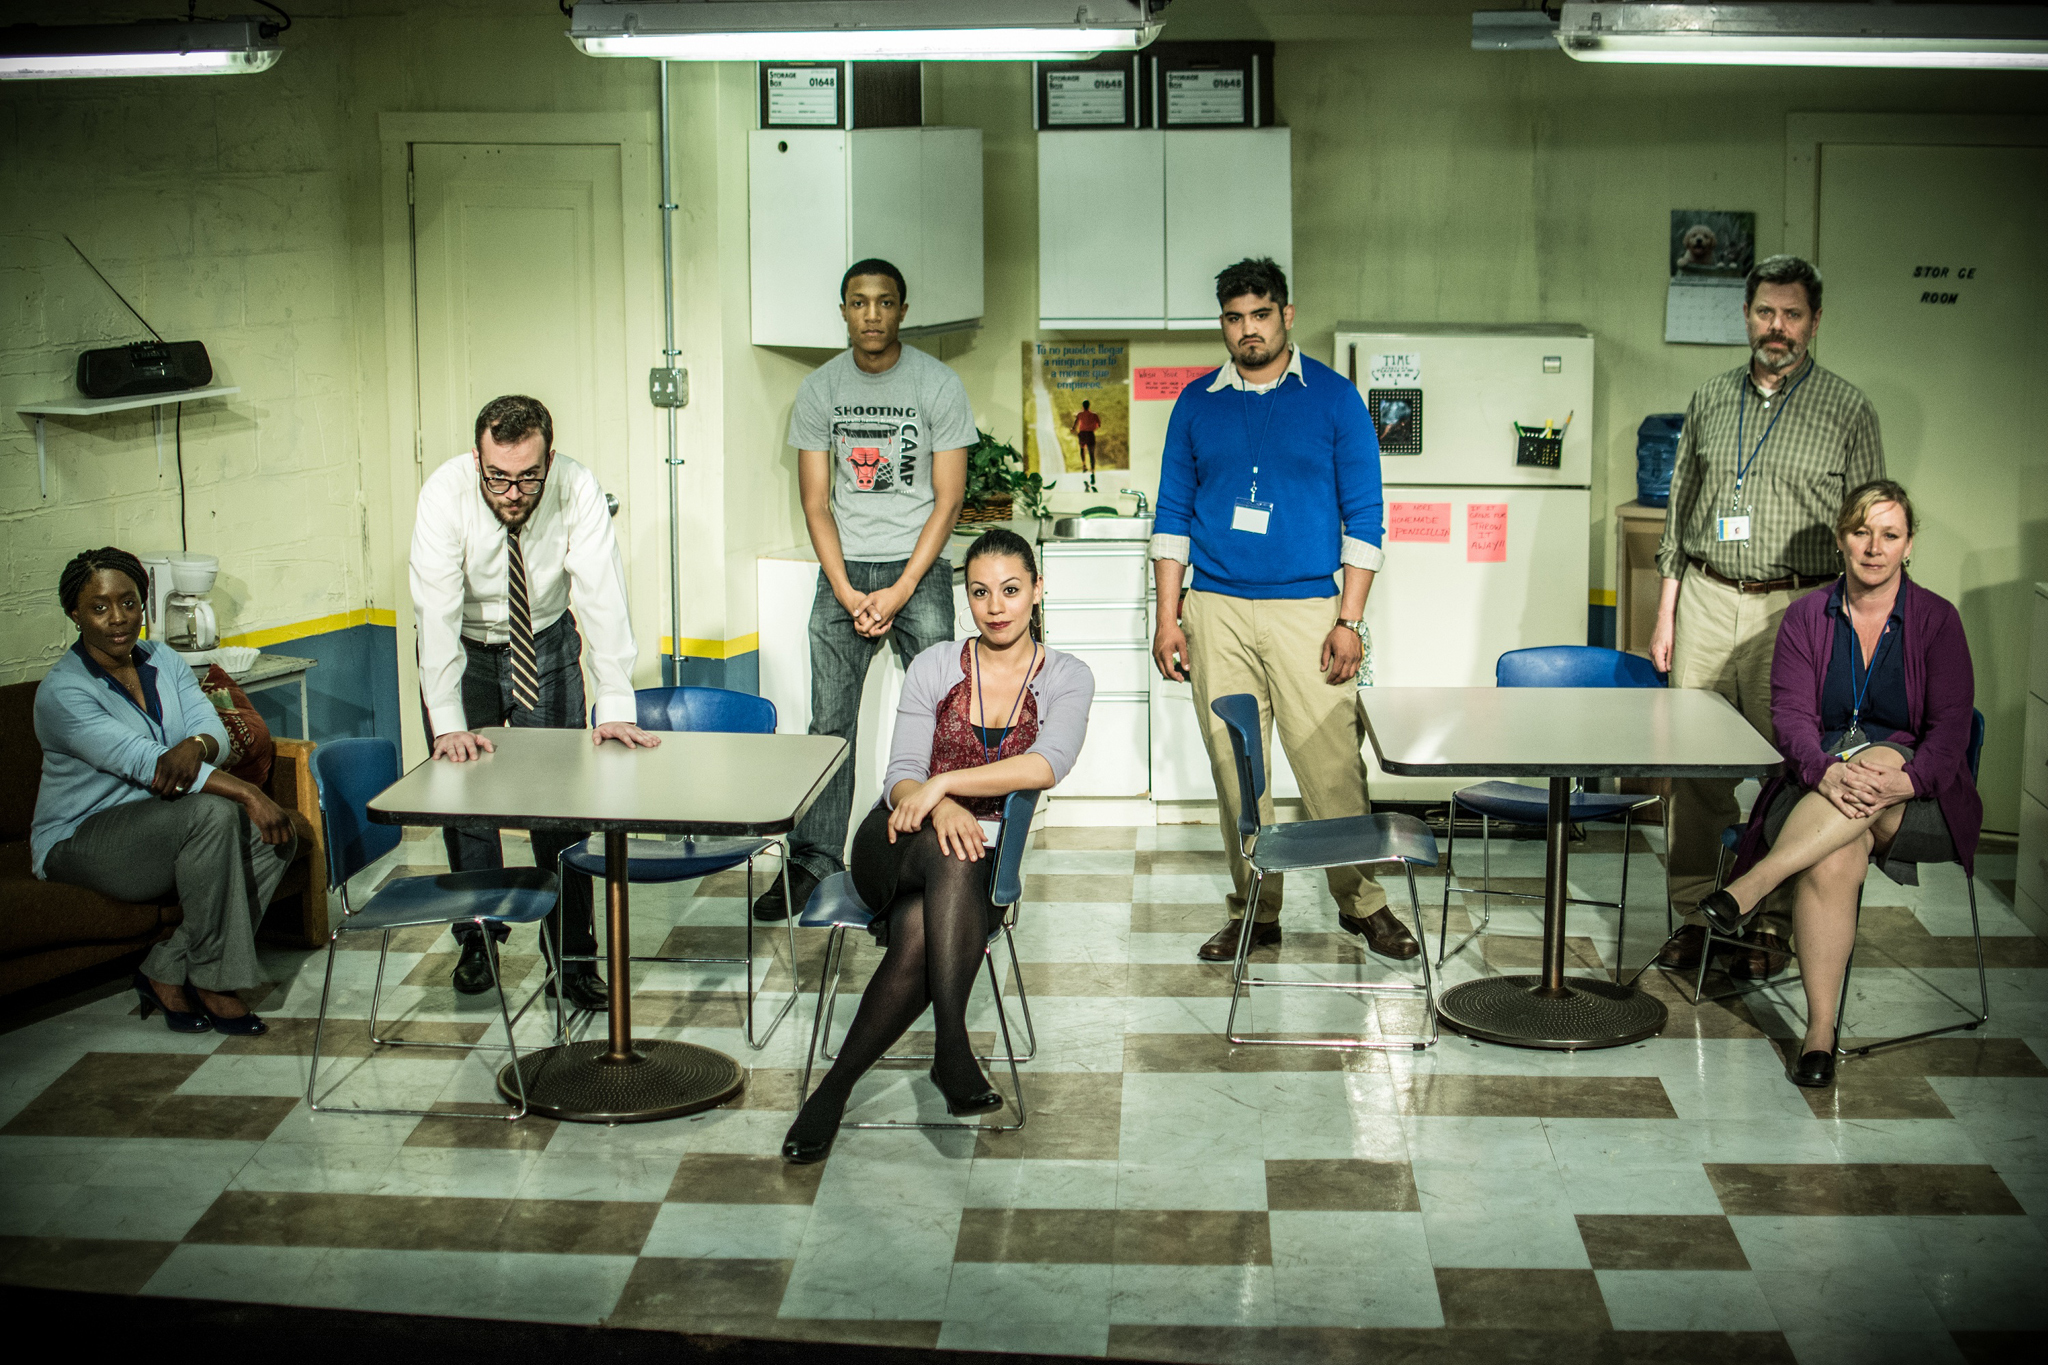 Lucy Sandy, Patrick Whalen, Jerry MacKinnon, Paloma Nozicka, Danny Martinez, HB Ward and Barbara Figgins in Exit Strategy at Jackalope Theatre Company